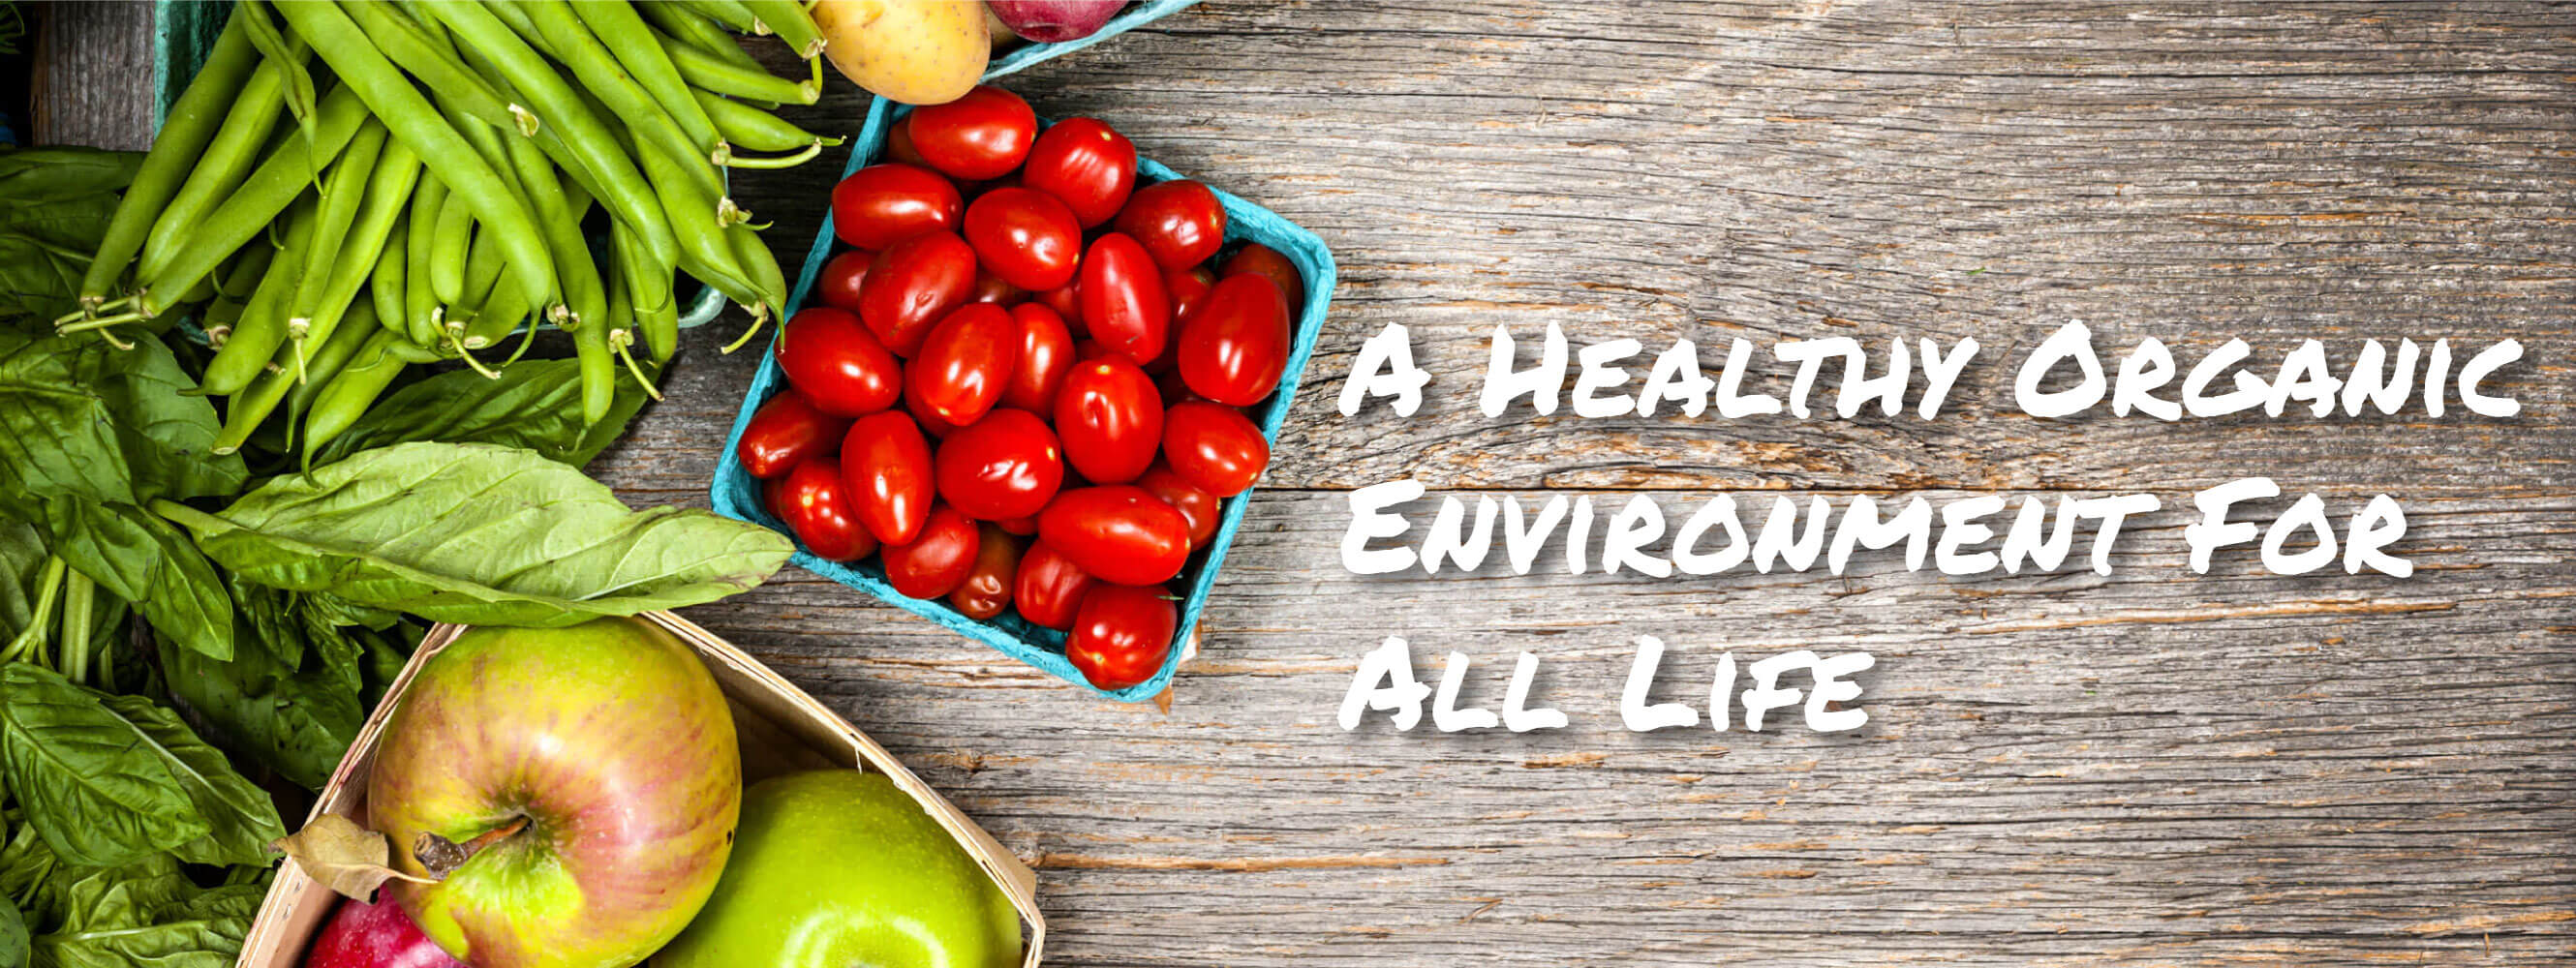 A Healthy Organic Environment for All Life